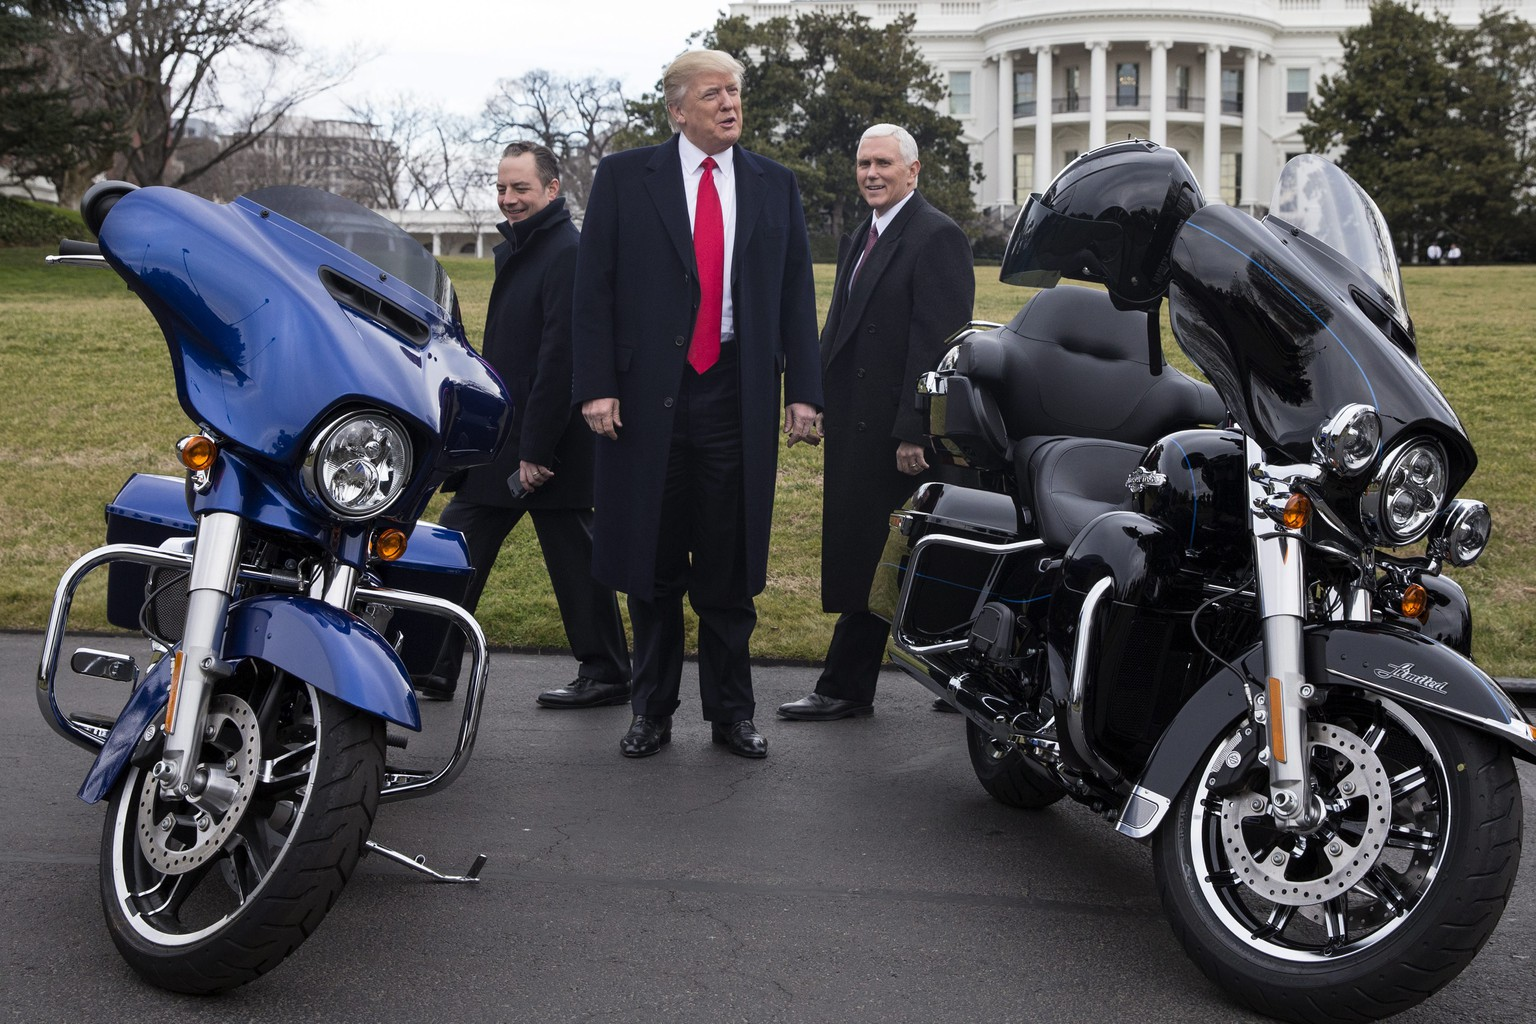 epa05767240 US President Donald J. Trump (C), US Vice President Mike Pence (R) and White House Chief of Staff Reince Priebus (L) look at Harley Davidson motorcycles while greeting Harley Davidson executives and union representatives on the South Driveway of the White House in Washington, DC, USA, 02 February 2017. President Trump and Vice President Mike Pence came out on the South Driveway to greet Harley Davidson executives and union representatives before a meeting in the White House.  EPA/MICHAEL REYNOLDS